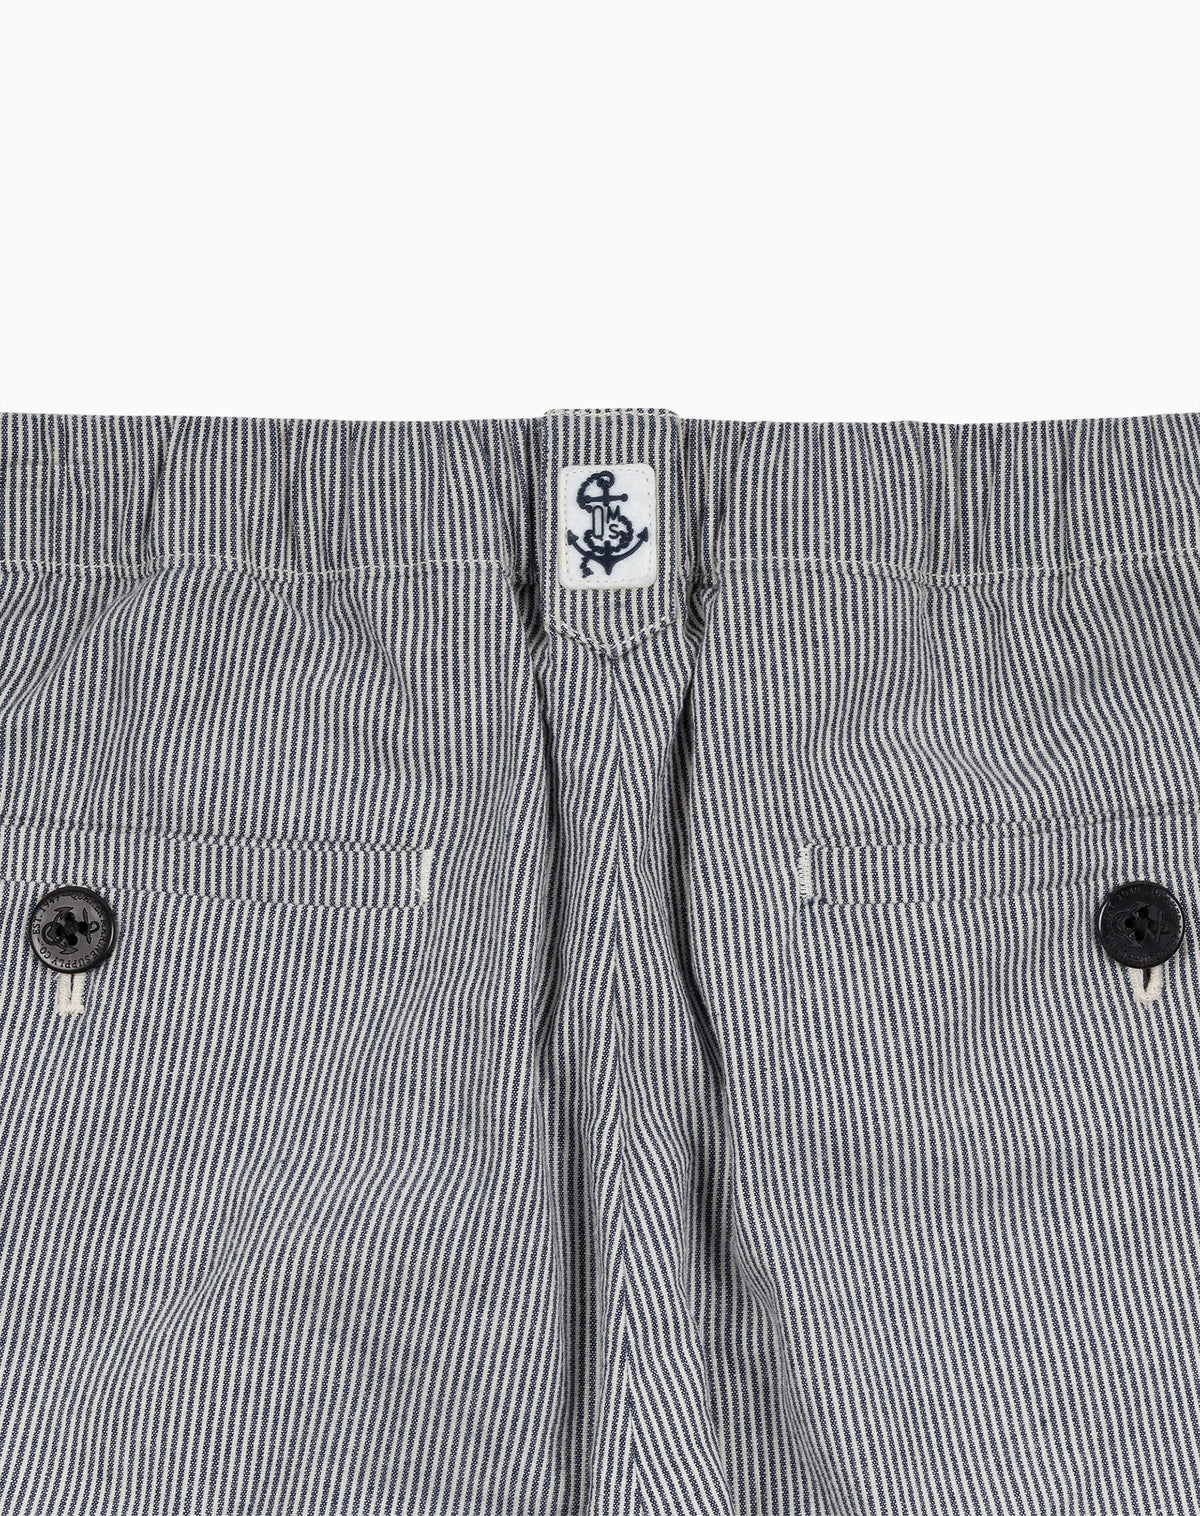 Deck Jogger in Railroad Stripe Pincord